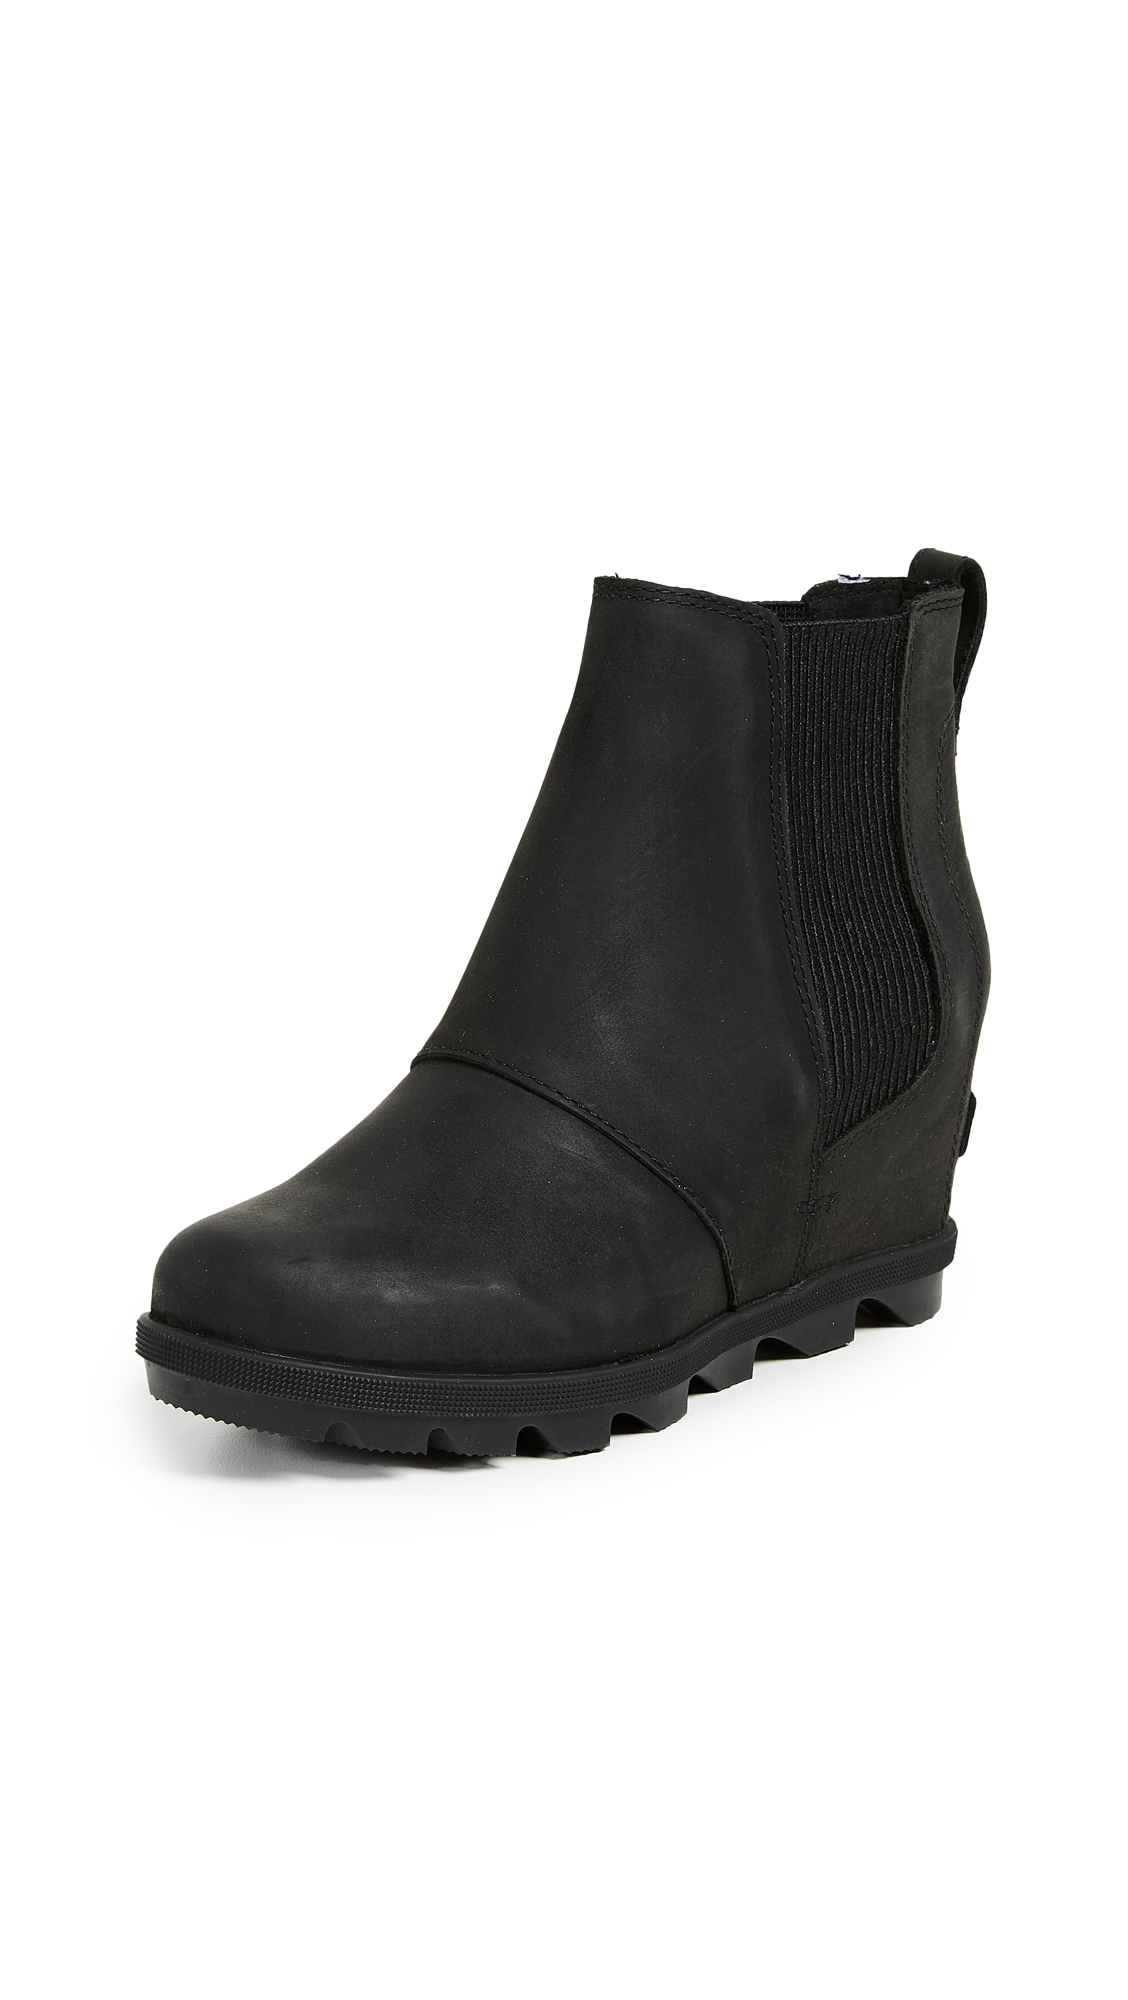 Women'S Joan Of Arctic Waterproof Hidden Wedge Booties in Black